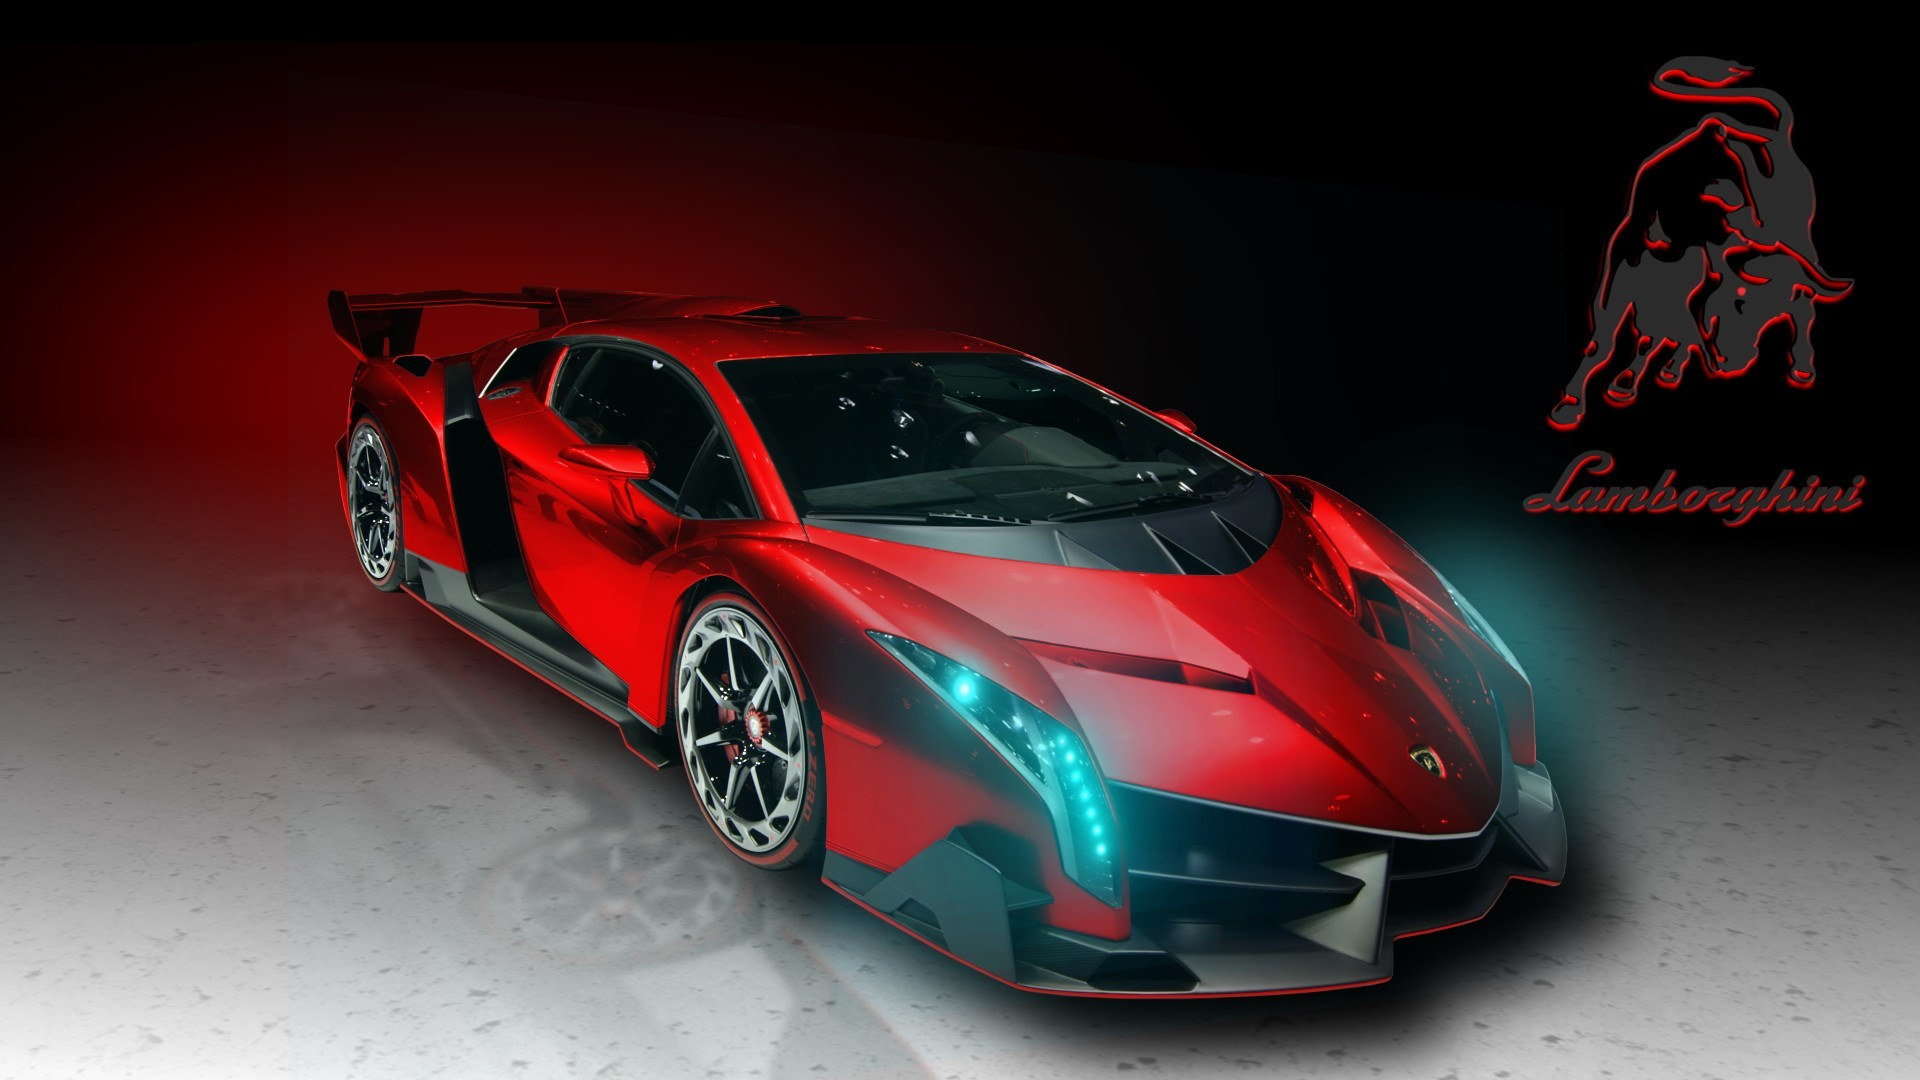 Sport Cars Wallpaper Hd 65 Pictures